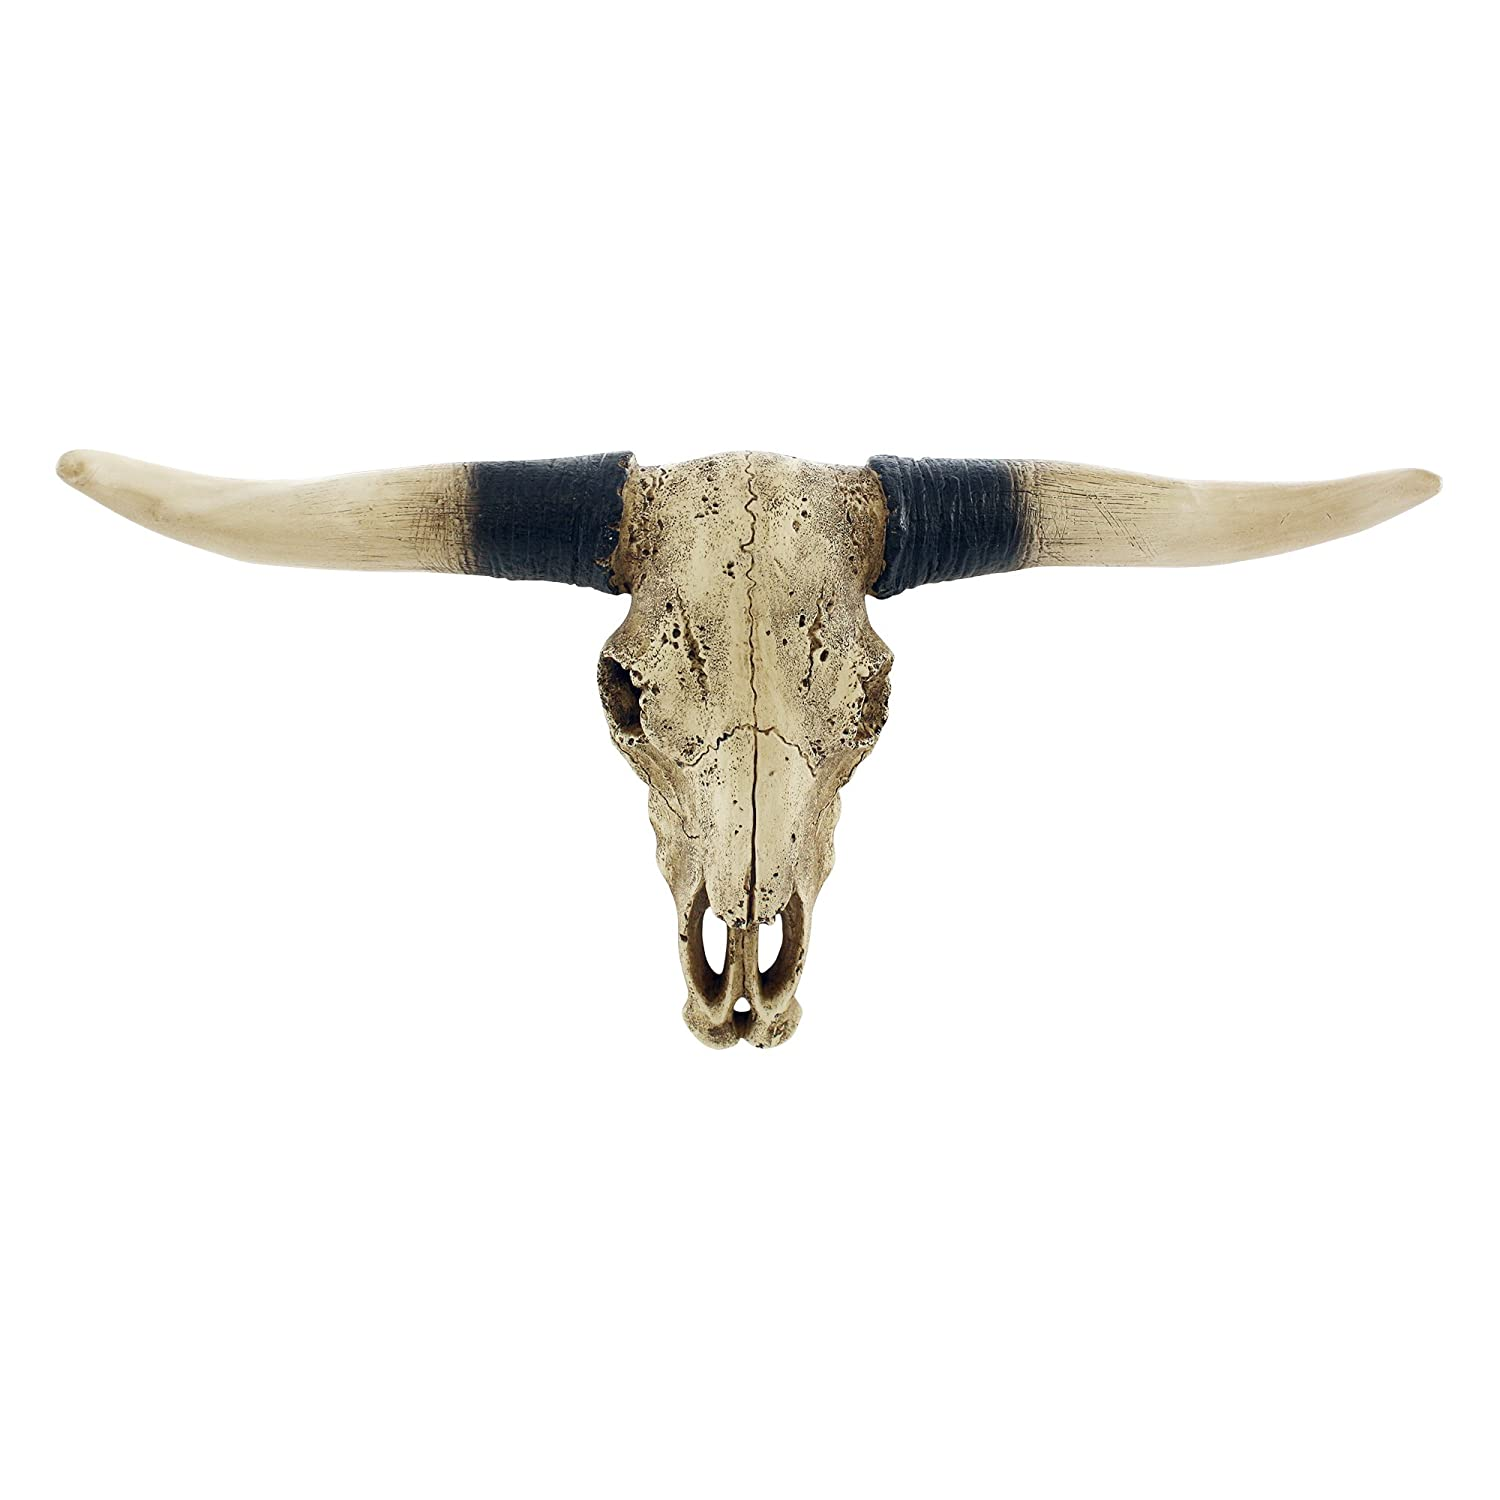 Pine Ridge Southwestern Bull Longhorn Skull Steer Bull Head Rustic Chic Wall Hanging Texas Decoration | Polyresin Steer Horns for Wall Sculpture | Replica Real Steer Bull Skull Head Aged Finish Brown